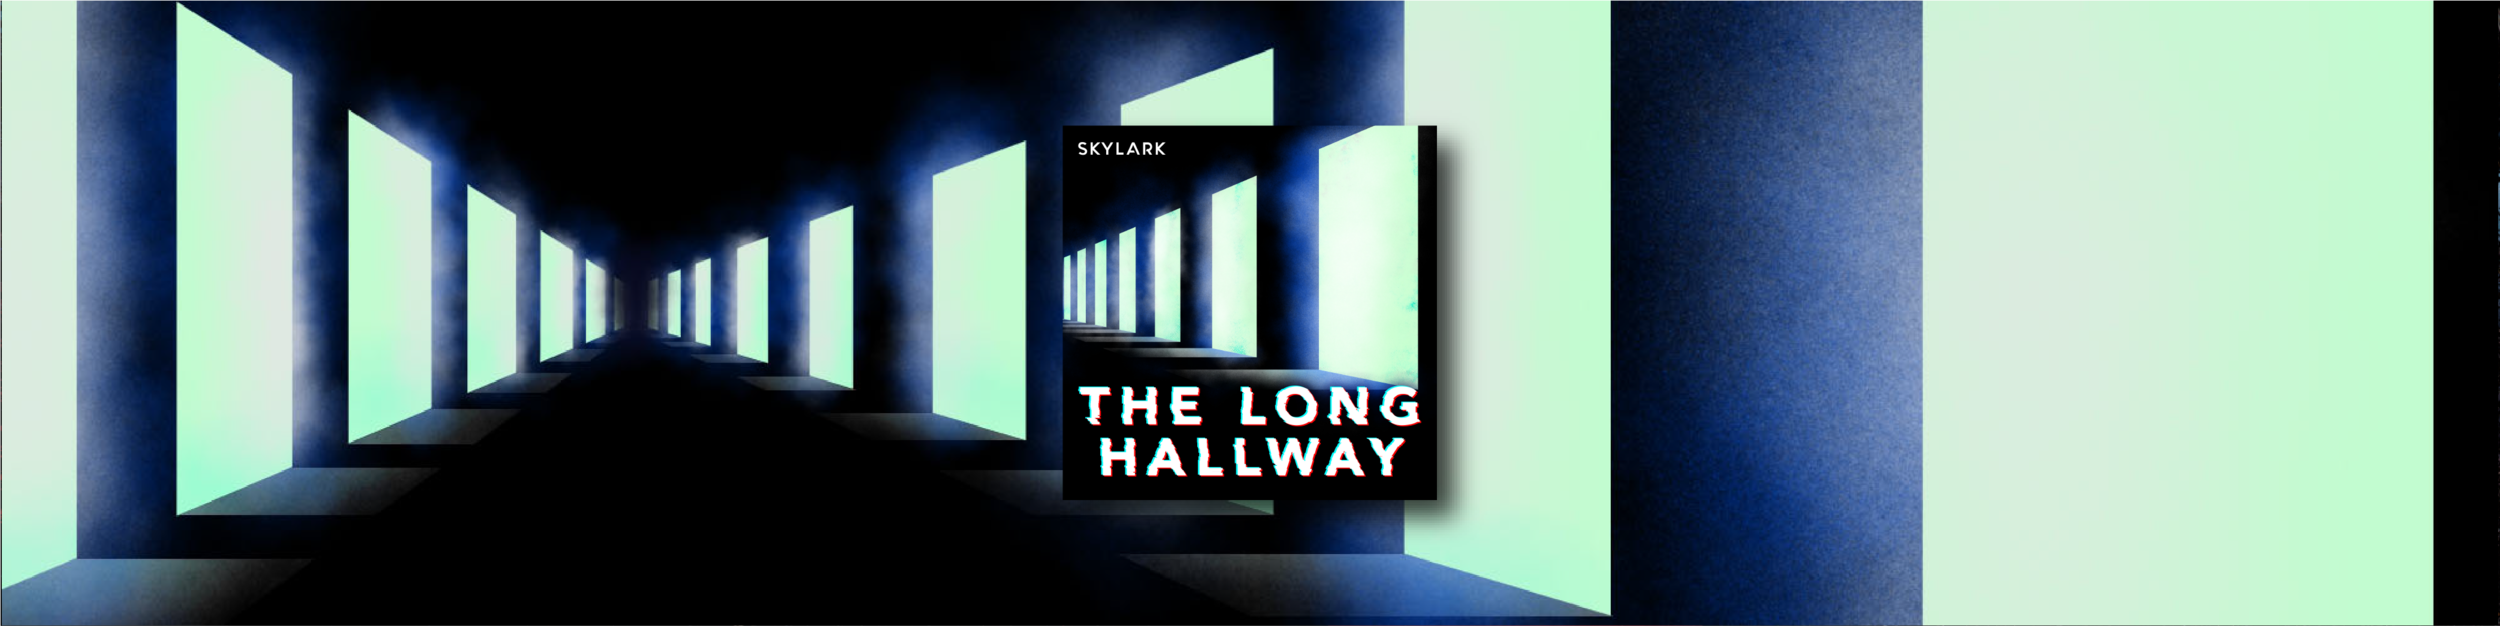 The Long Hallway Widescreen with Square Logo.png